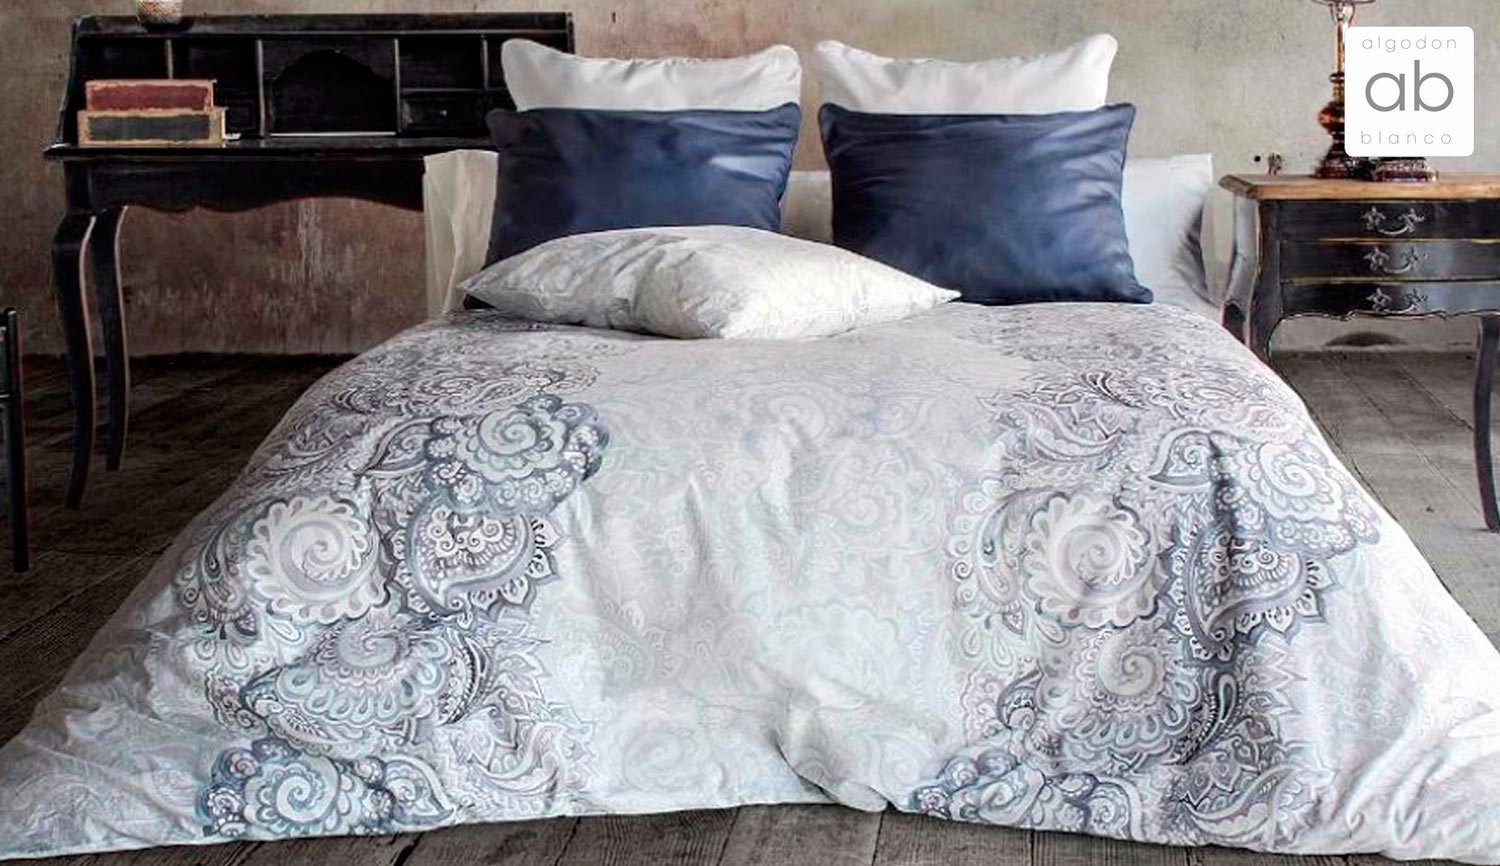 5-piece duvet cover 100% cotton - INDO - white cotton